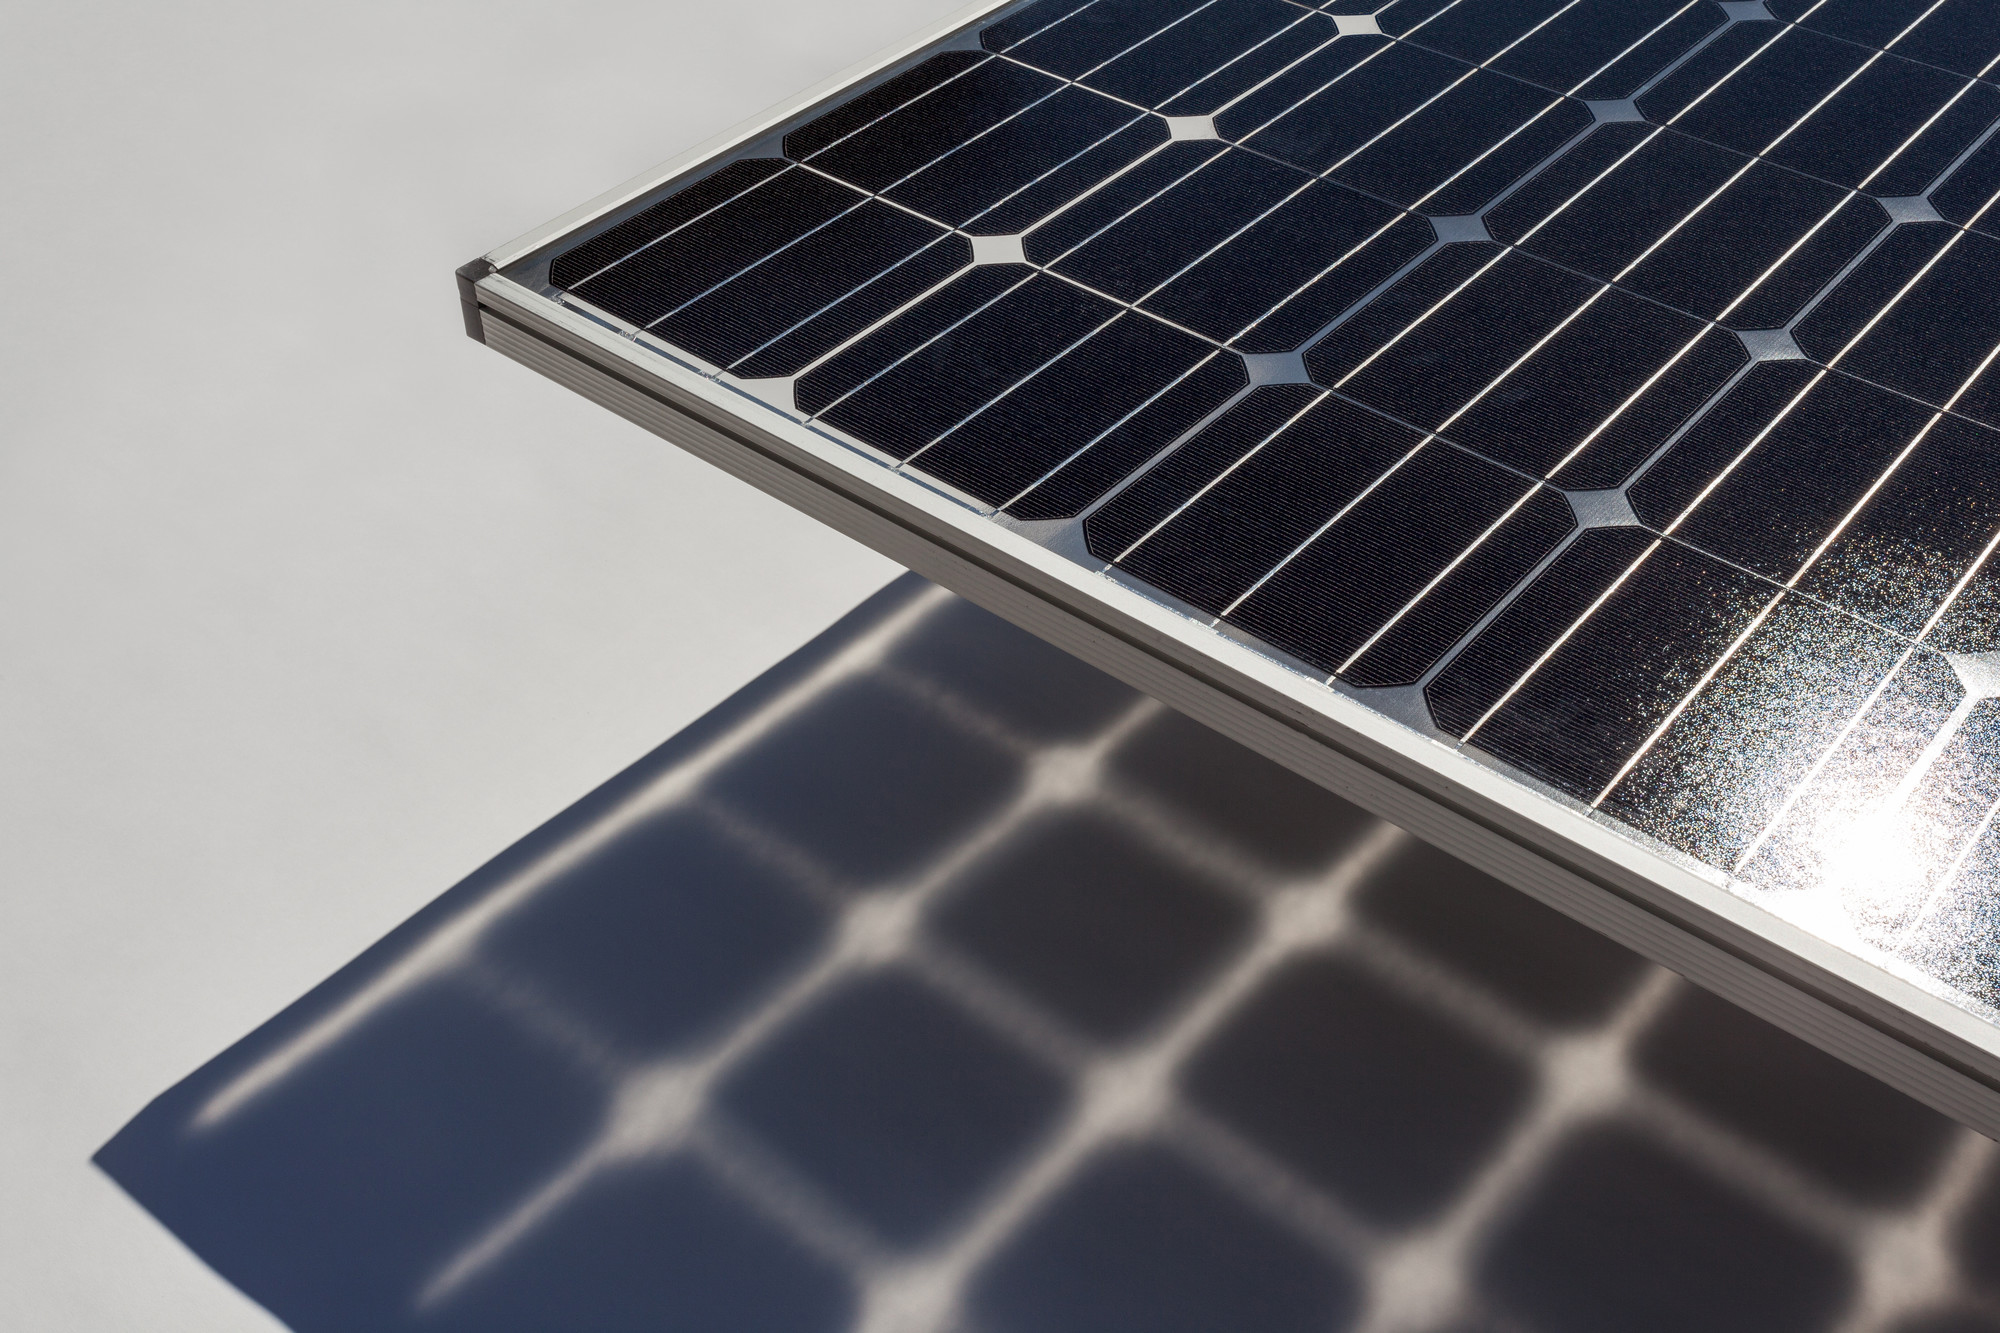 Recently, Jolywood said it had collaborated with TUV NORD and the National Center of Supervision and Inspection on Solar Photovoltaic Product Quality (CPVT) to establish a preliminary testing standard for bifacial solar modules. Image: Fraunhofer ISE